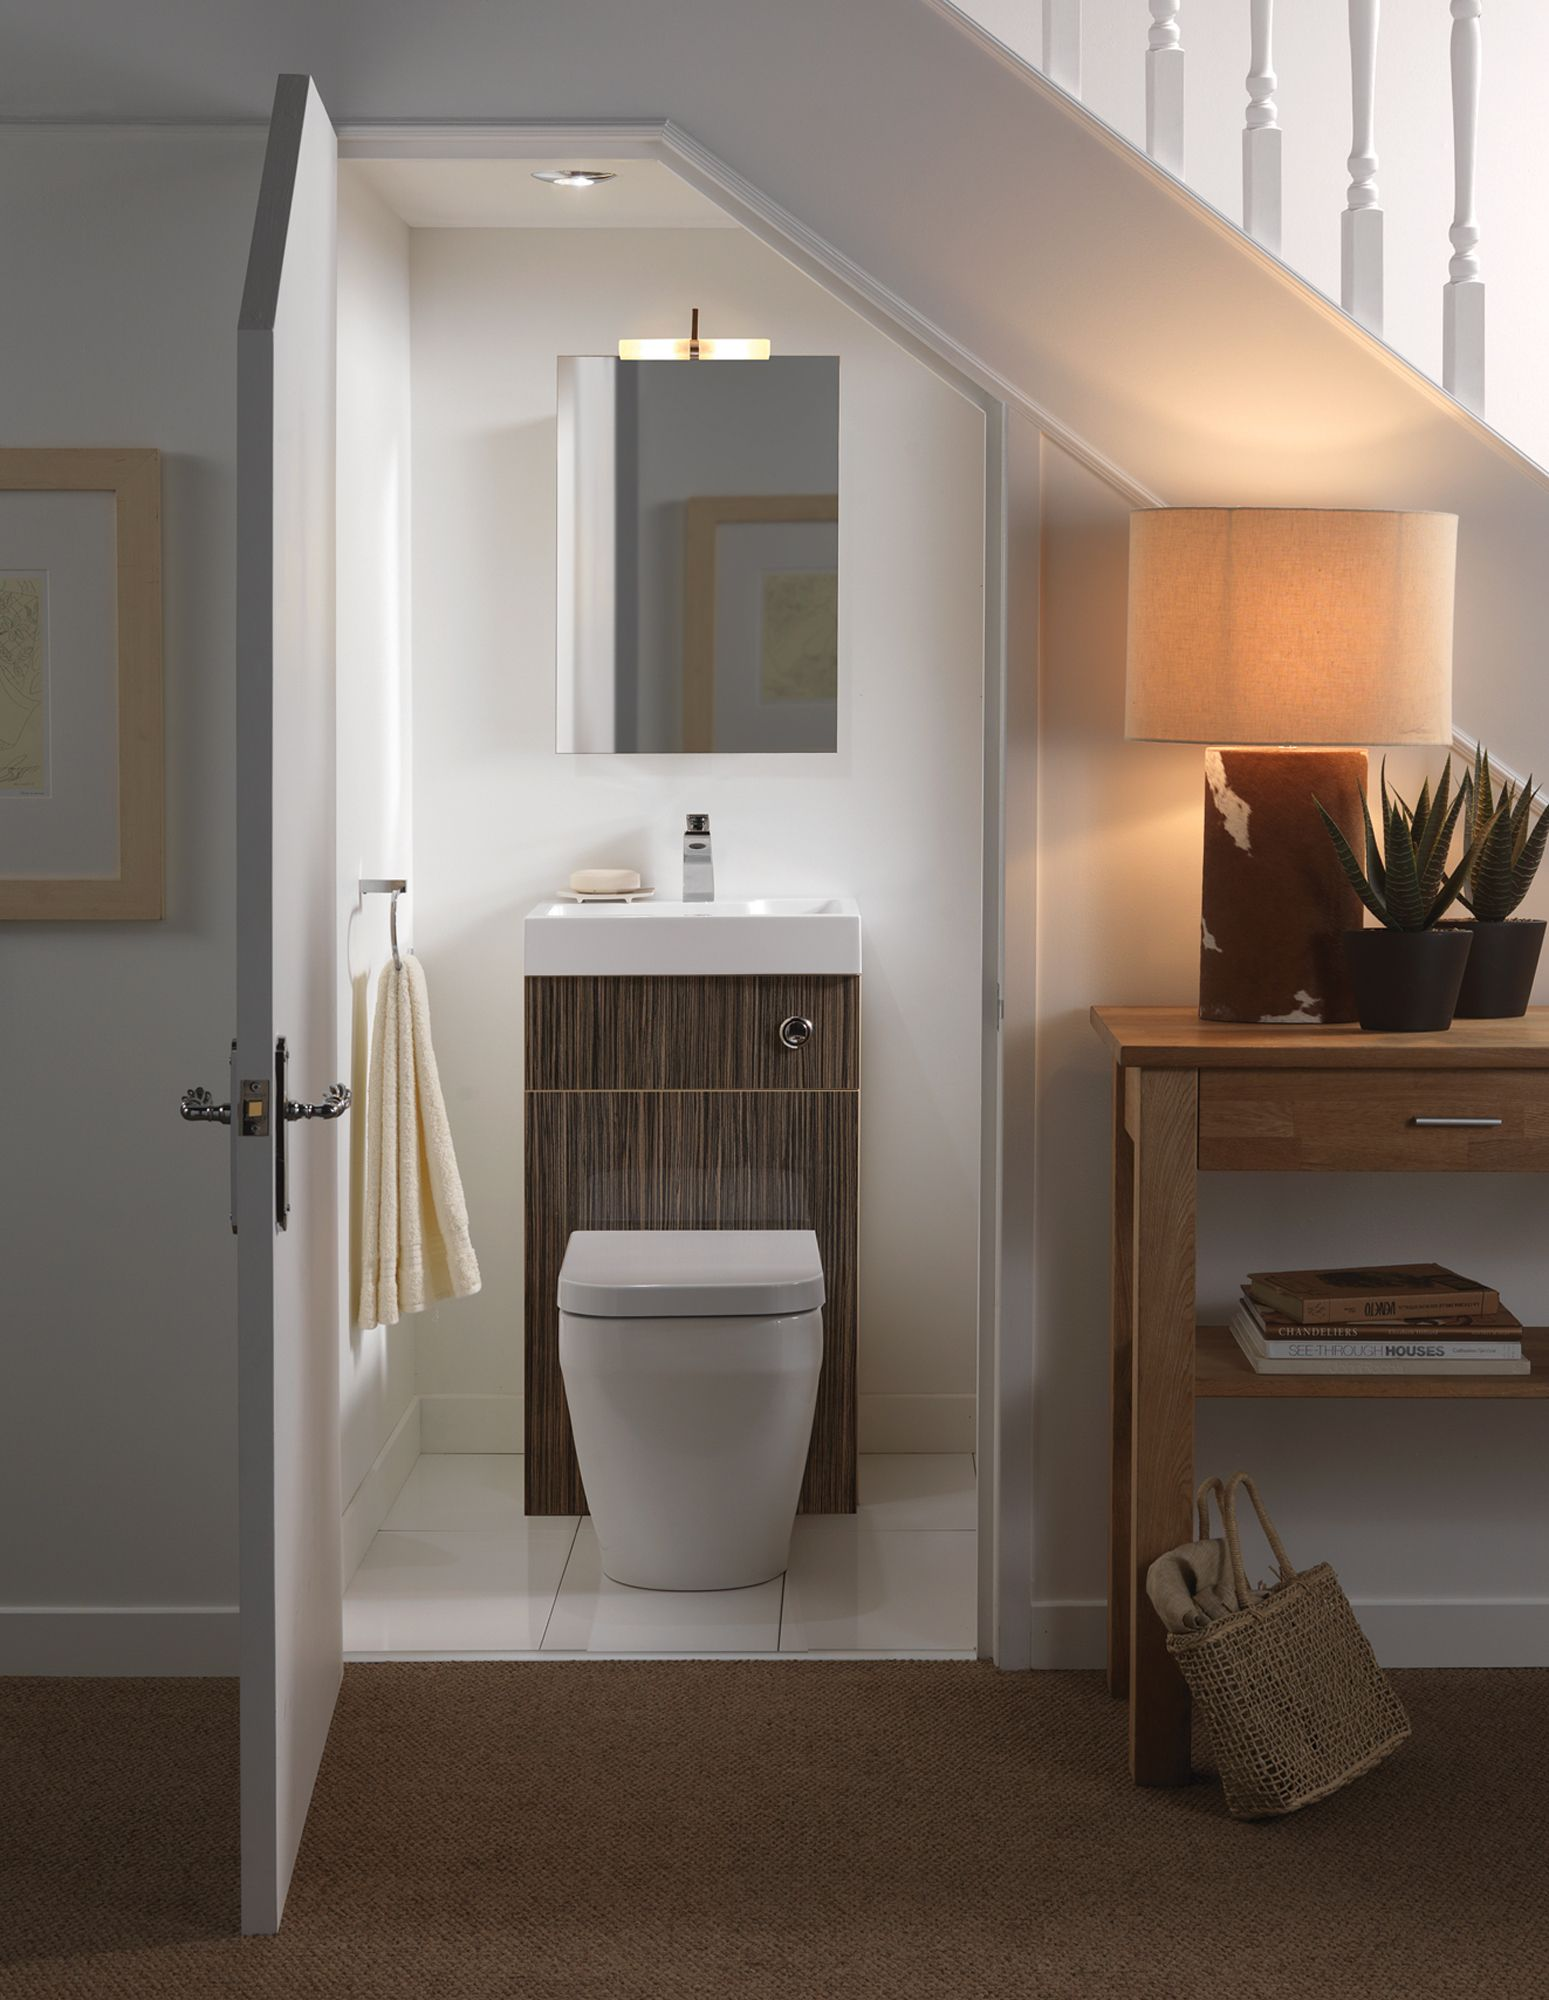 Toilet With Sink Attached Smart Interior Design Ideas The Bathroom Toilet House And